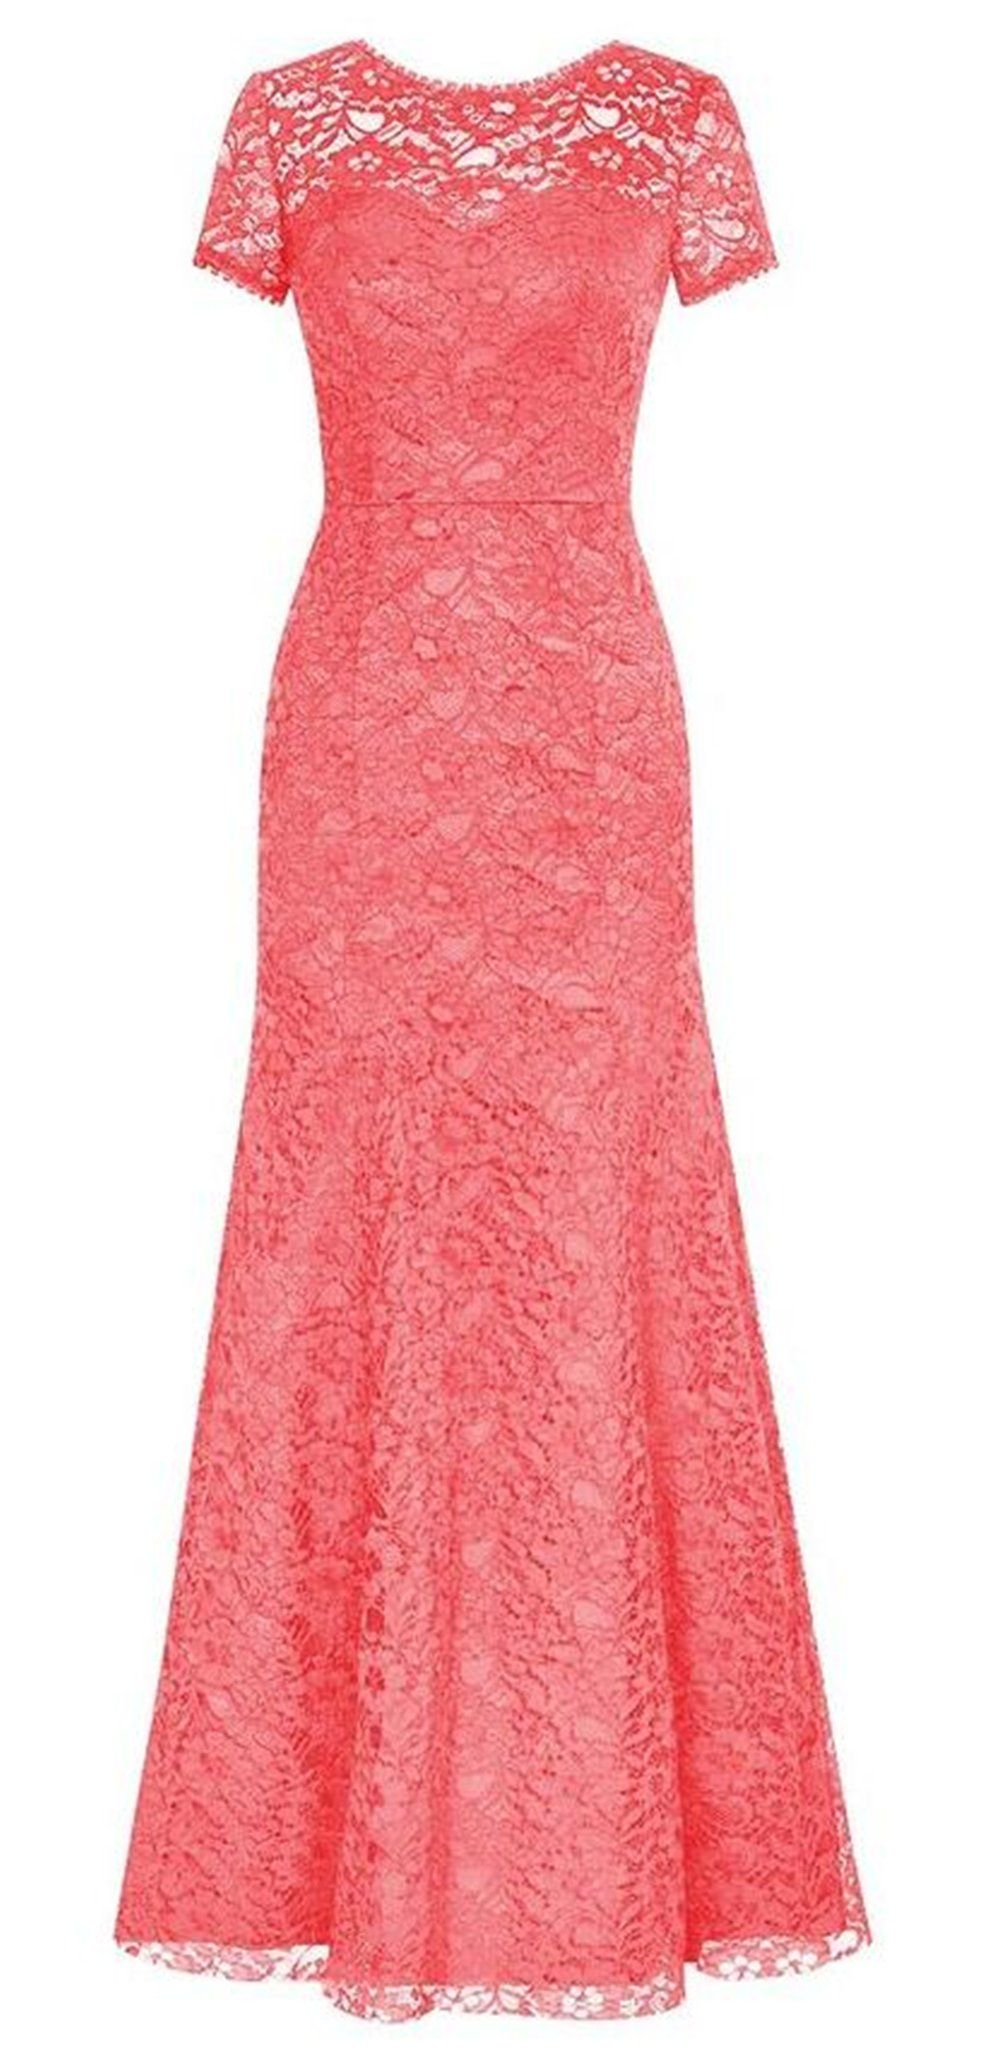 Endofjune lace and chiffon evening prom dress us coral have